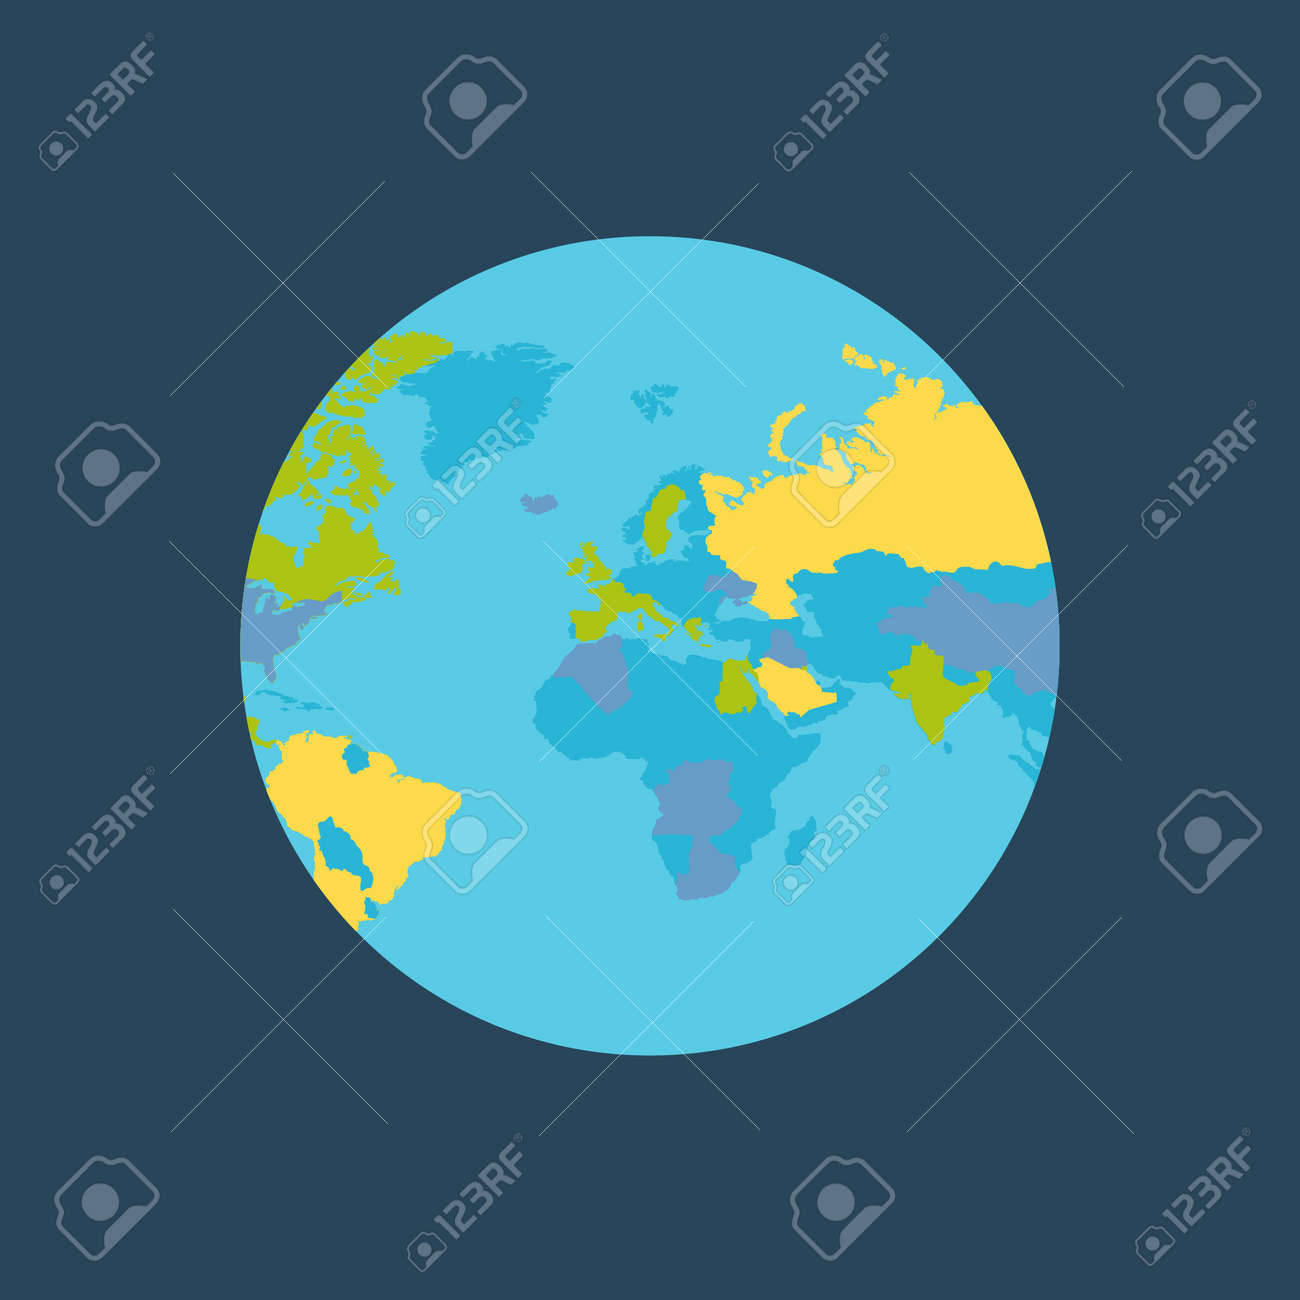 Planet earth vector illustration world globe with political planet earth vector illustration world globe with political map countries silhouettes on the planet gumiabroncs Choice Image